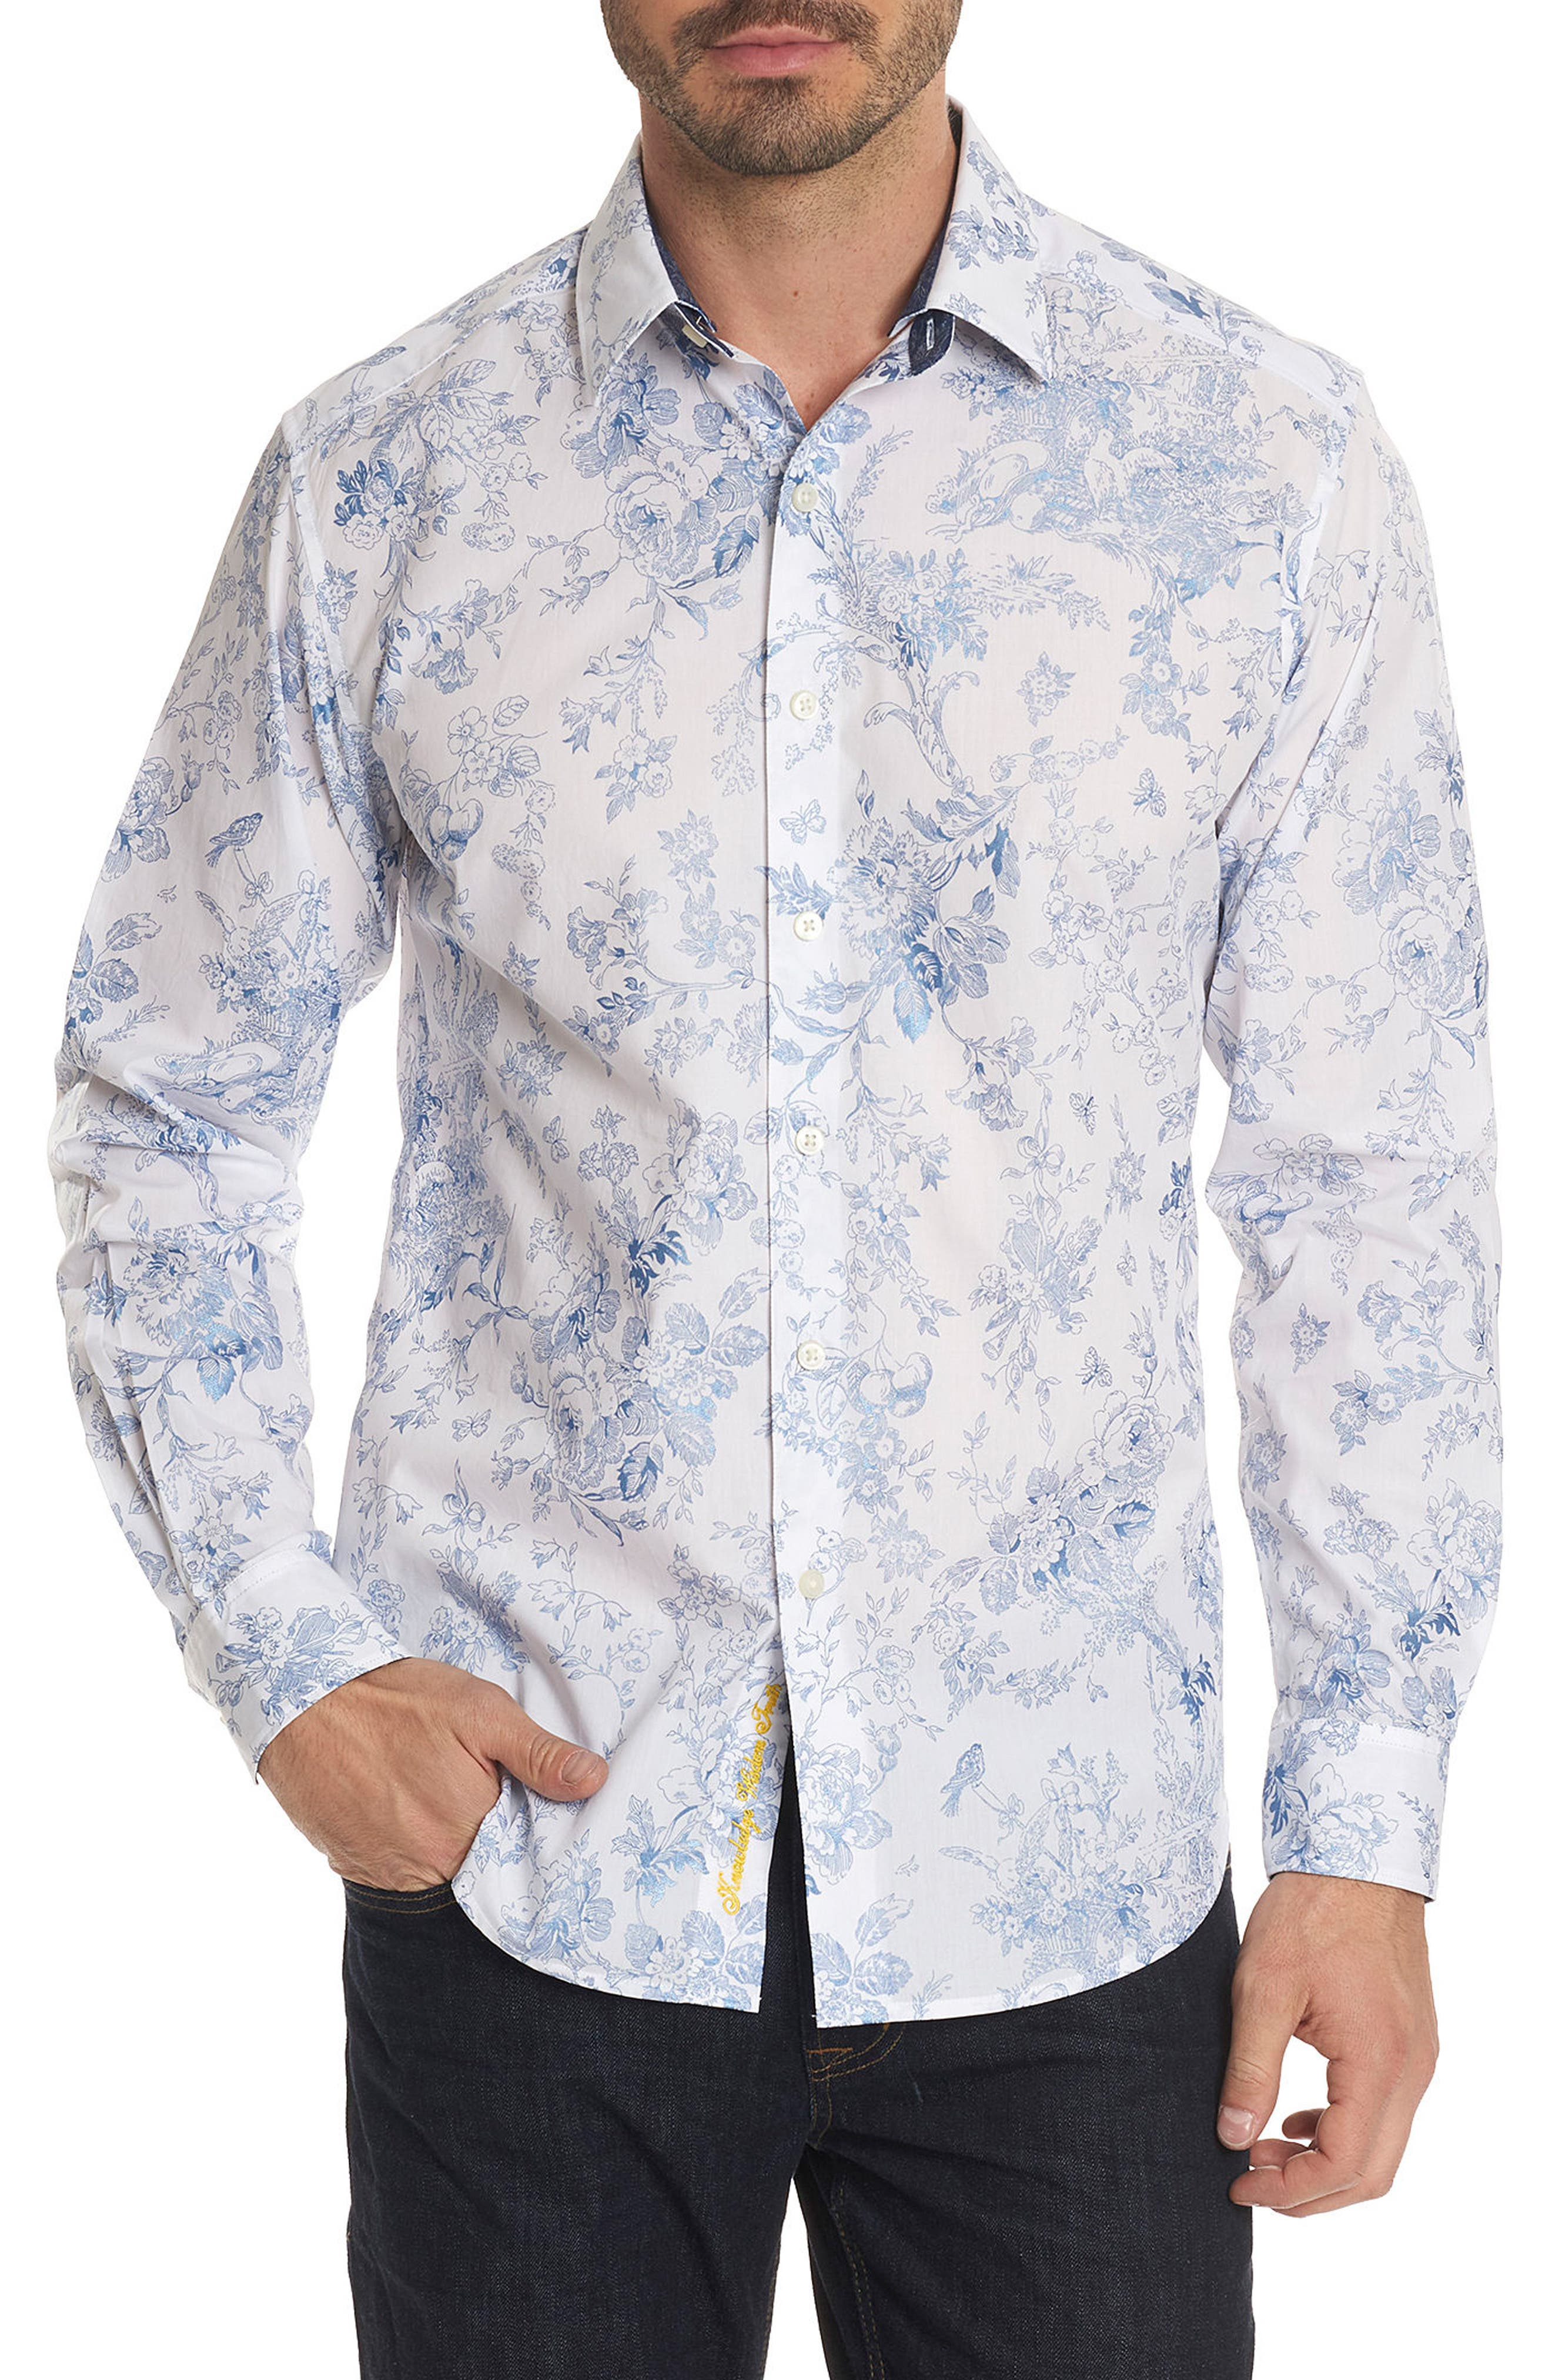 Rider Classic Fit Sport Shirt,                         Main,                         color,